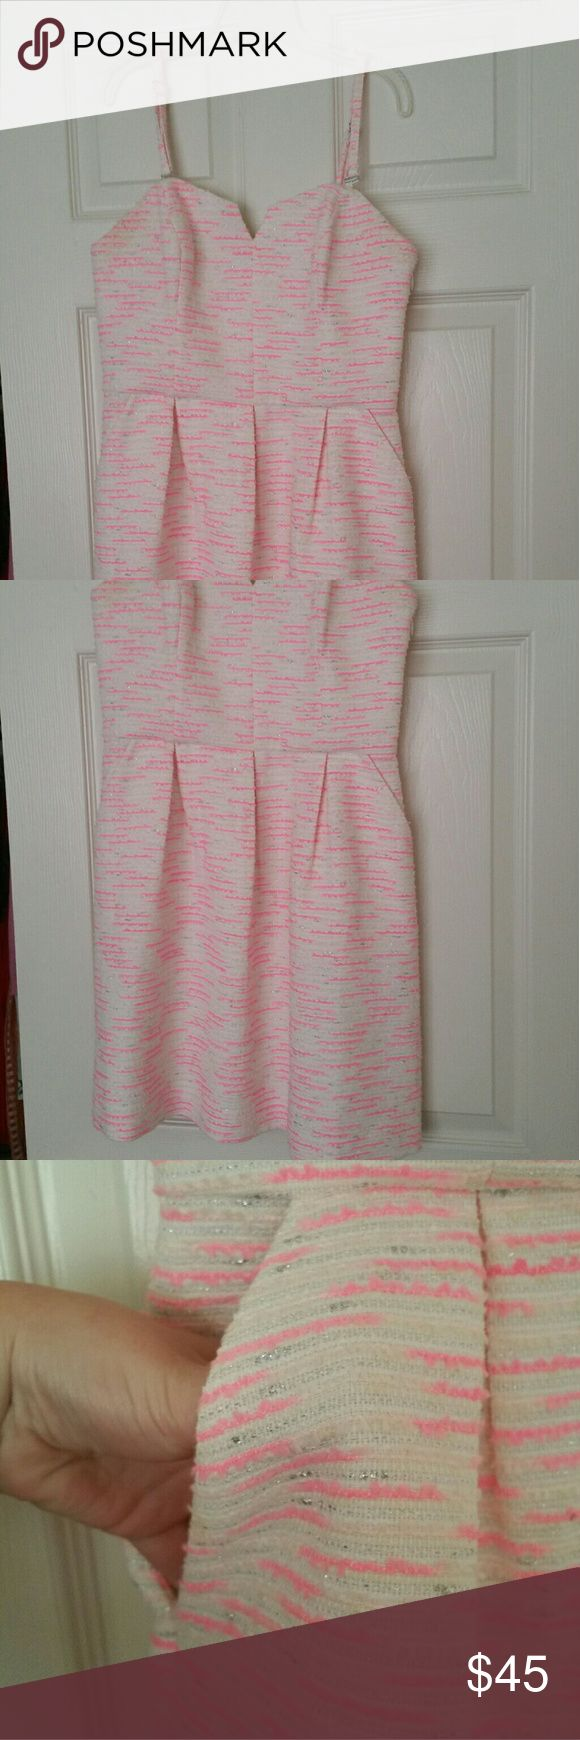 Pink and Cream Party Dress Moulinette Souers Pink, cream, and silver cocktail dress from the brand Moulinette Souers. Worn once. Size six, great condition. Smoke free home. Anthropologie Dresses Strapless